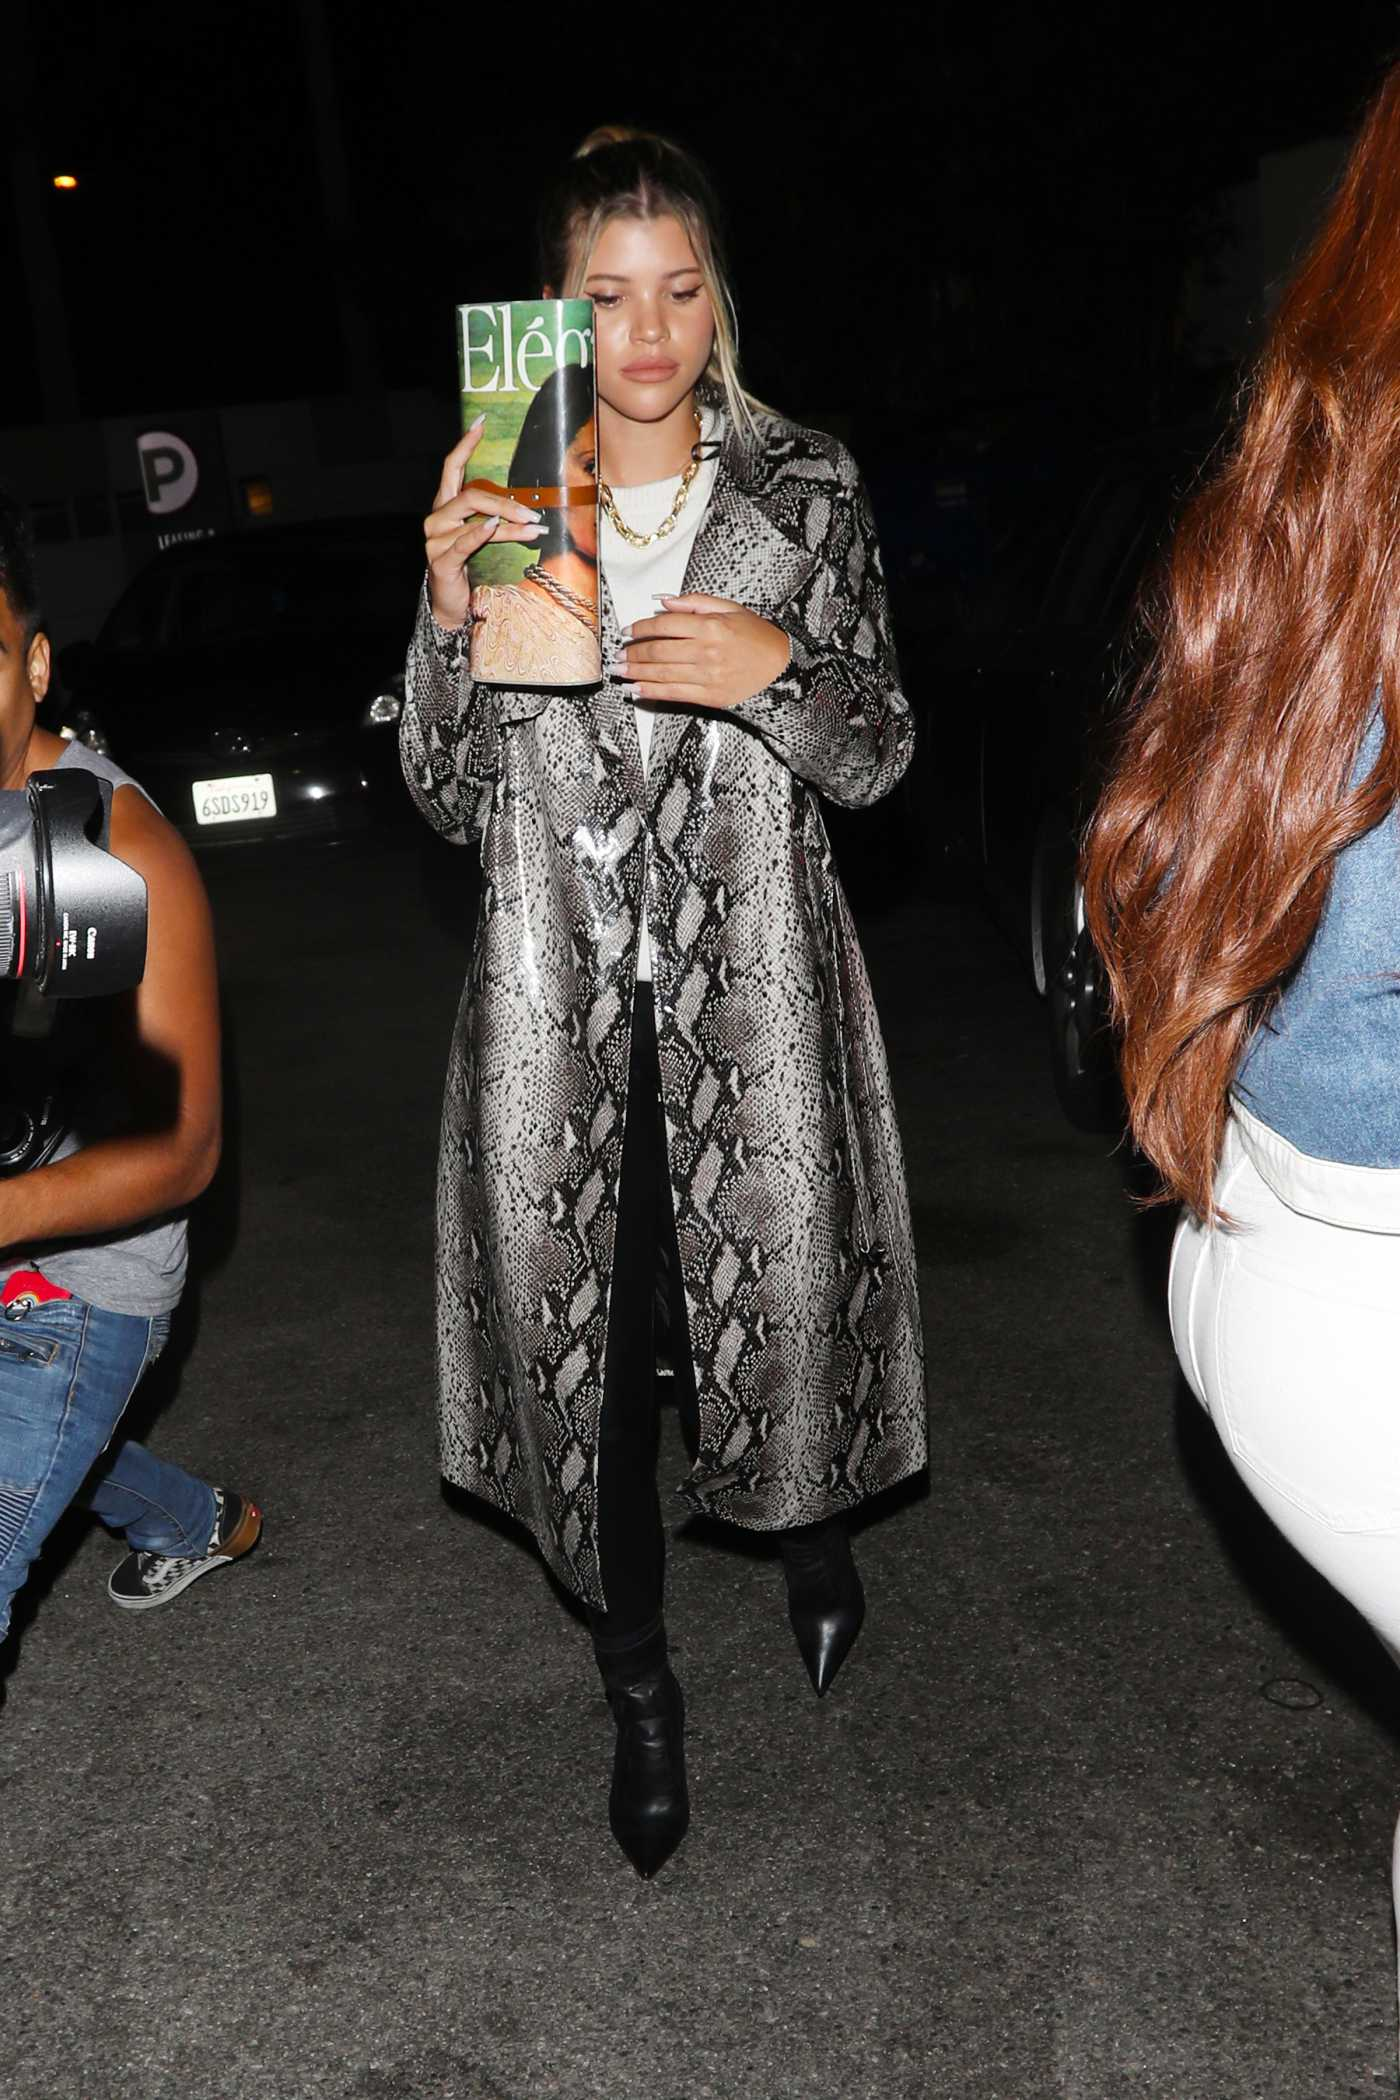 Sofia Richie in a Sheepskin Coat Leaves the Nice Guy Night Club in Los Angeles 07/27/2019